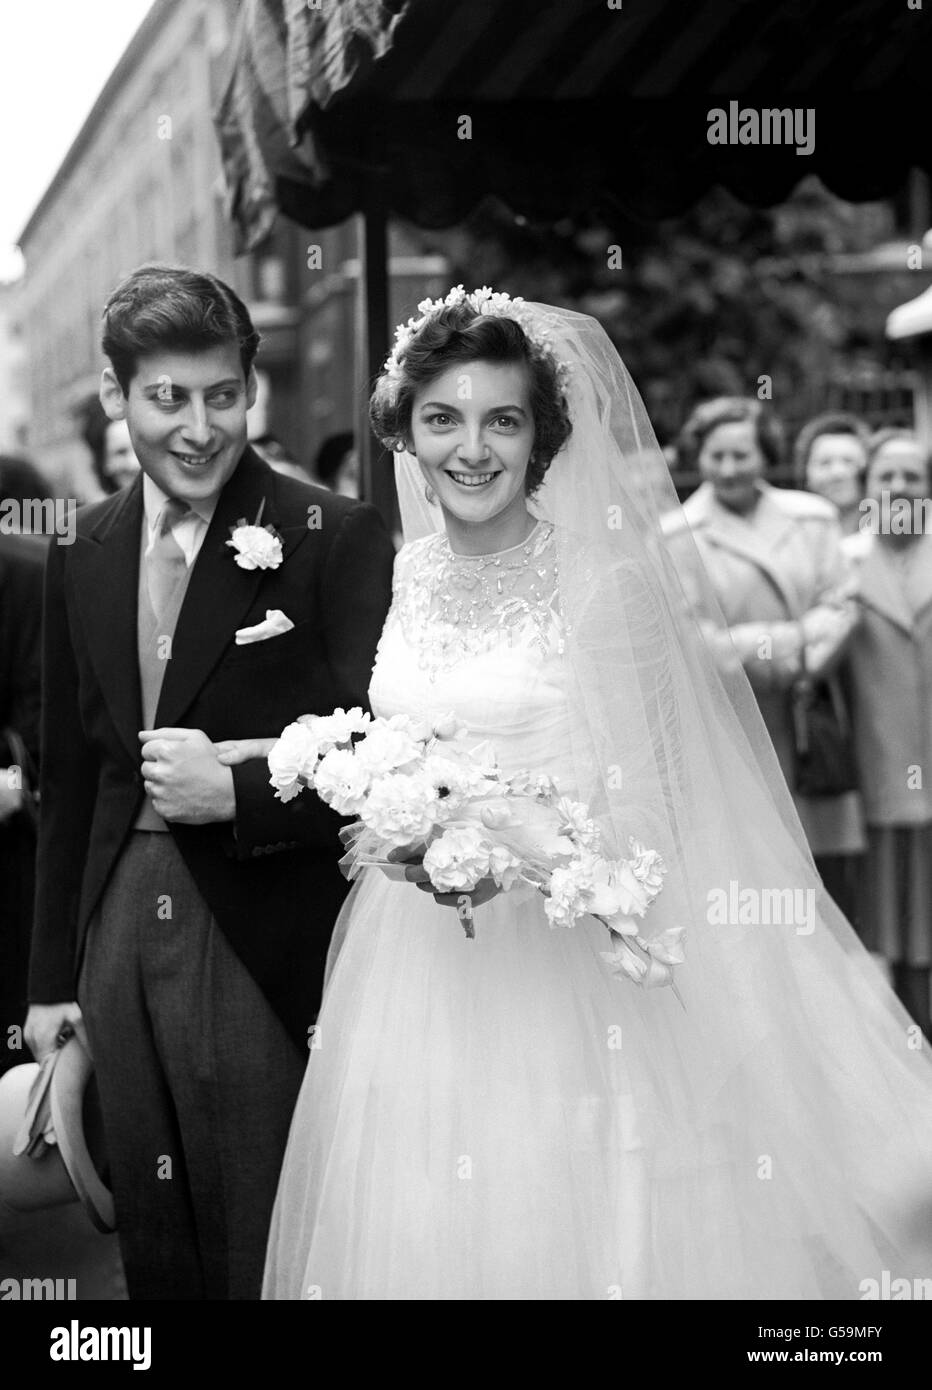 Social Events - Clement Freud and Jill Raymond wedding - London - Stock Image